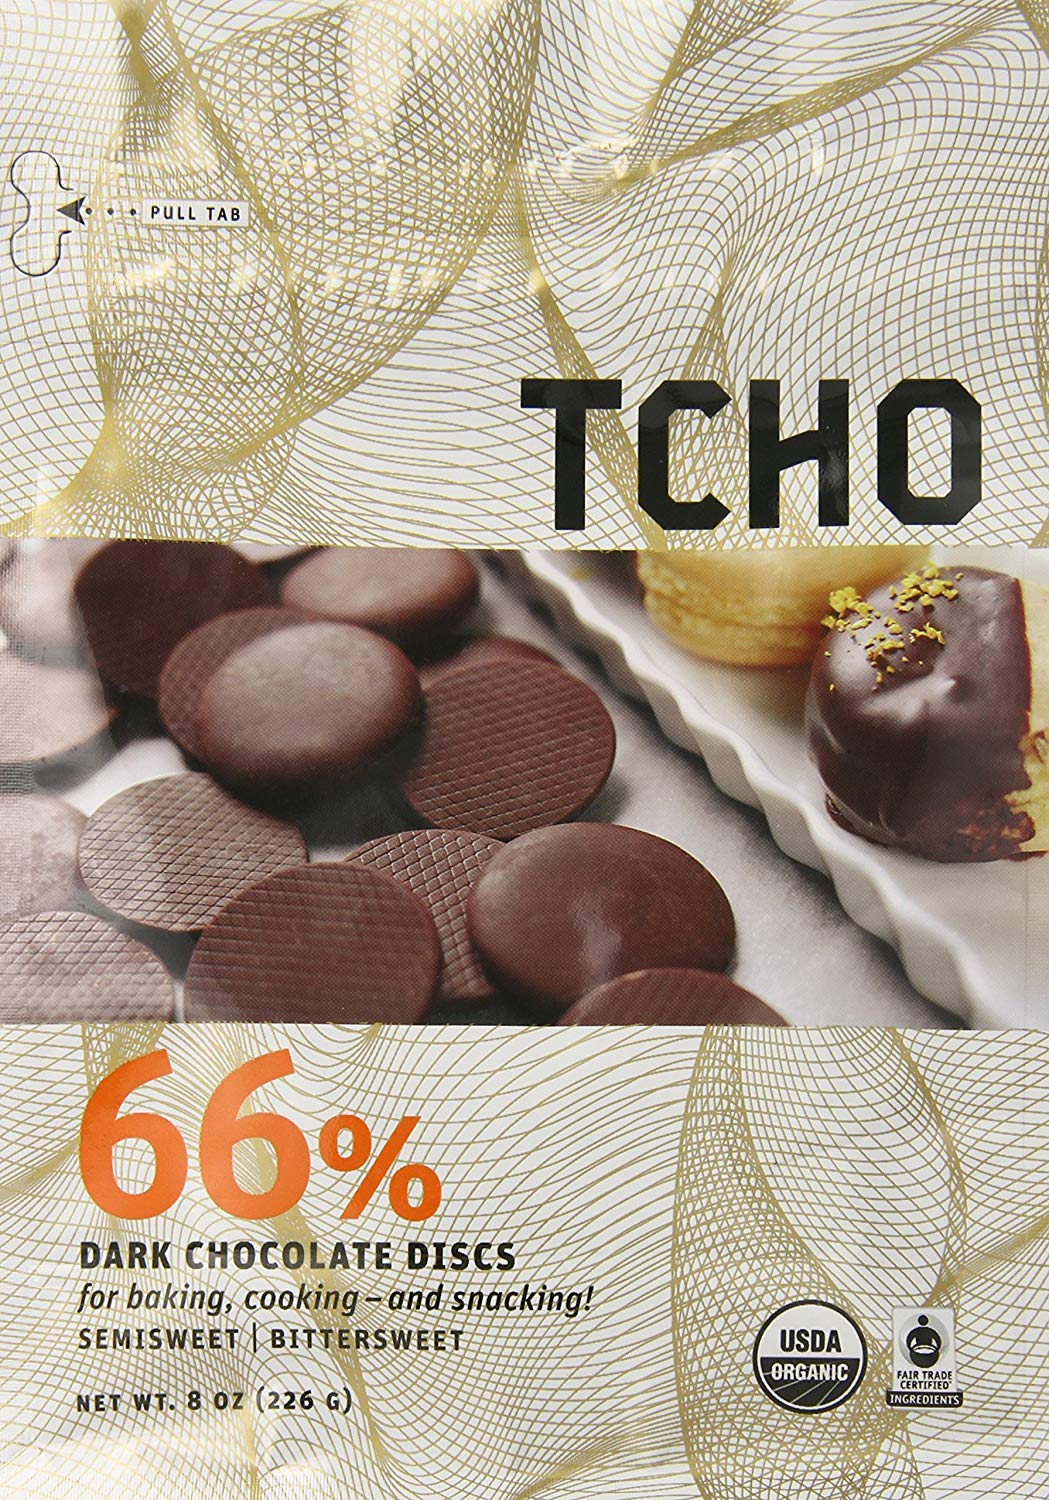 Bag of TCHO Chocolate Discs